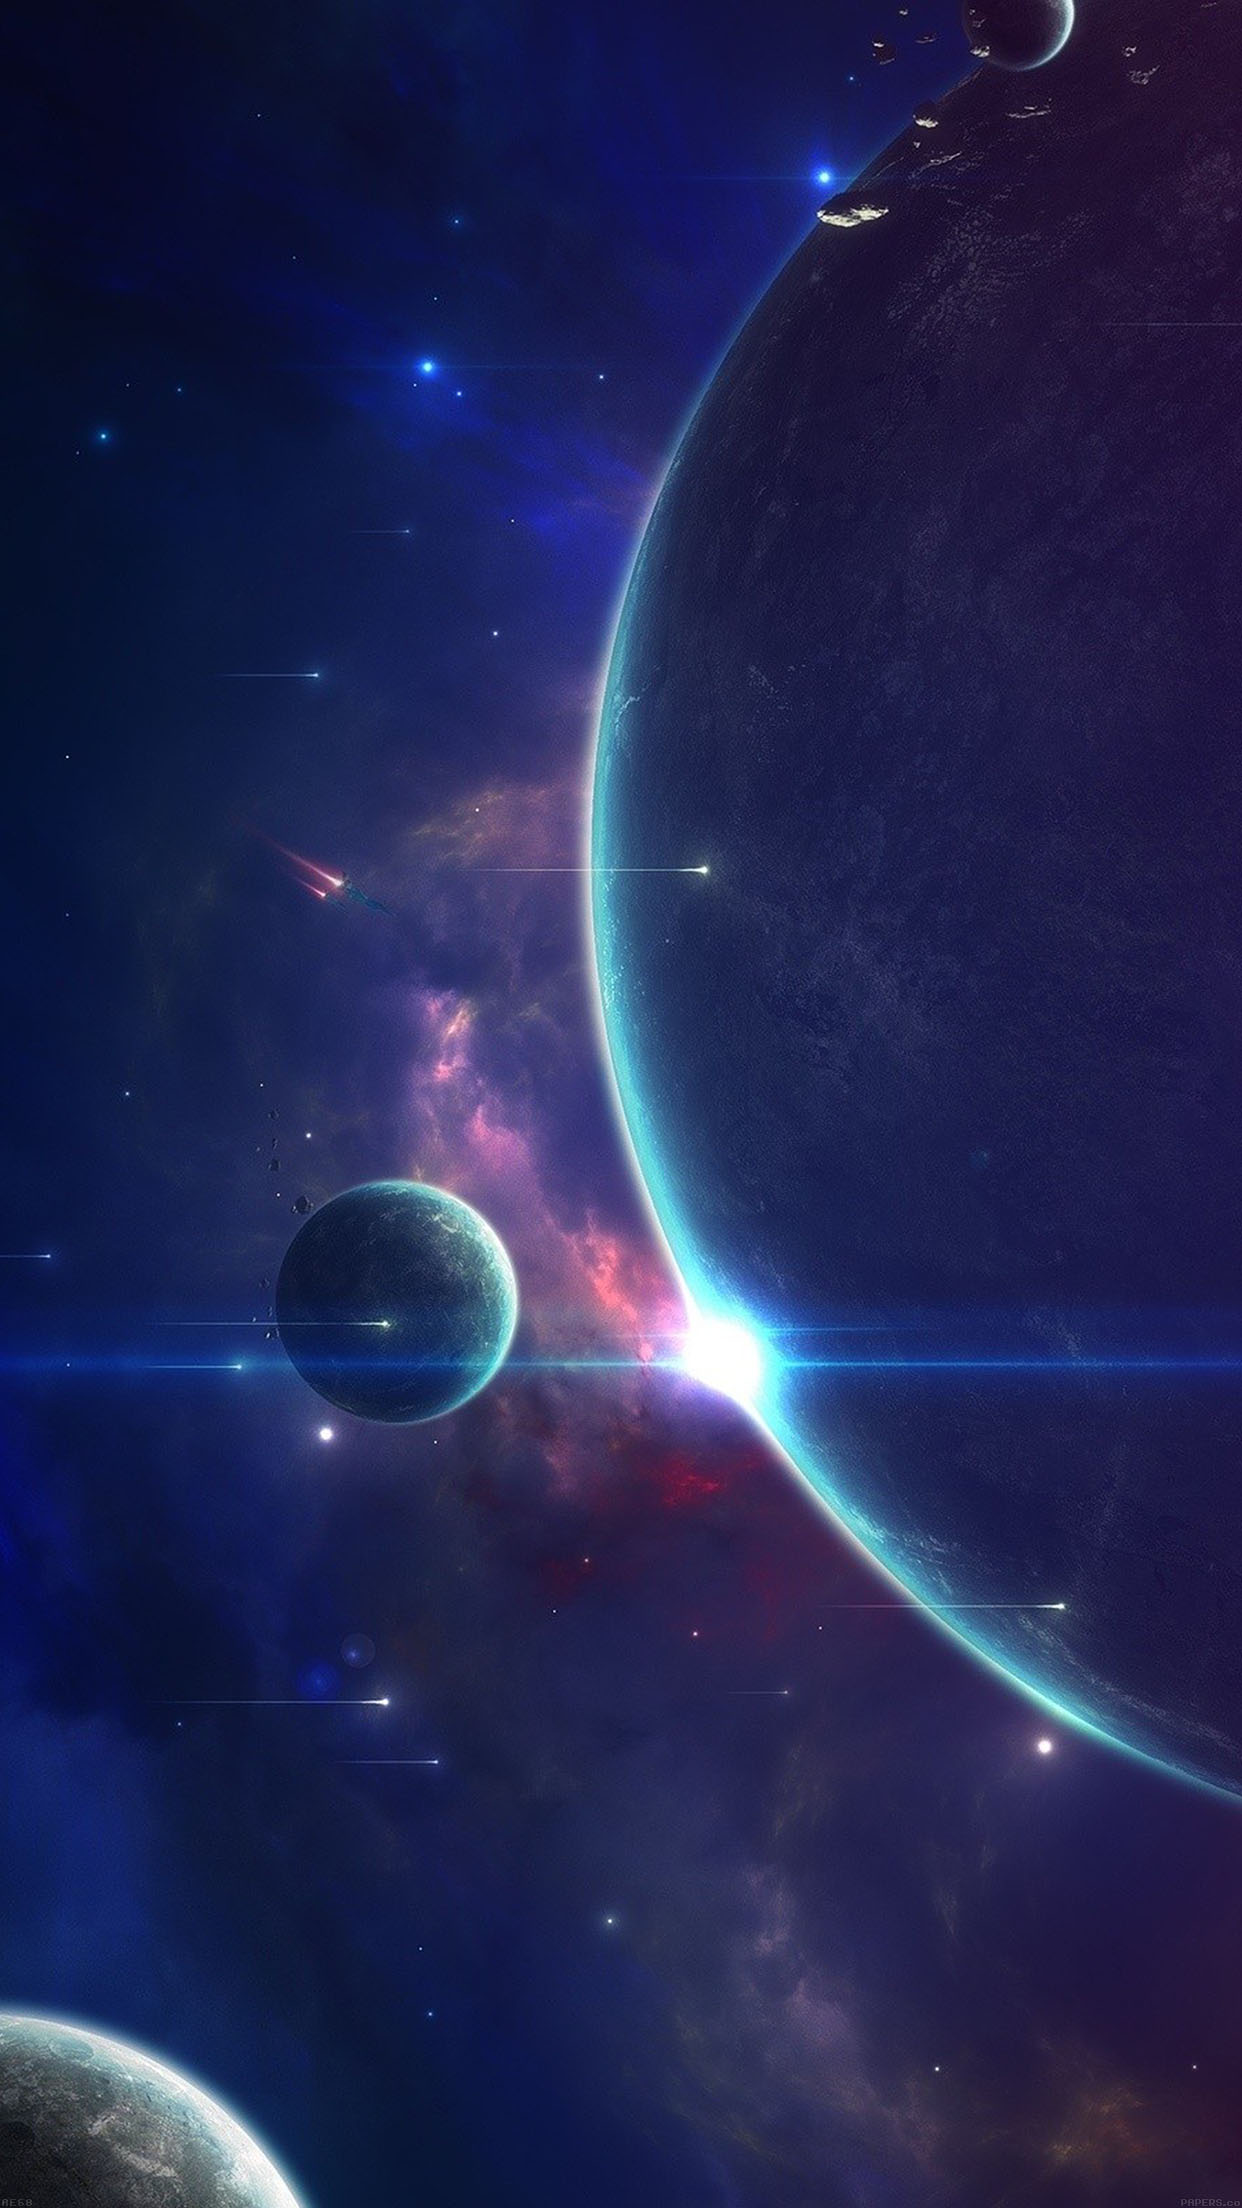 Mysterious Space Wallpaper